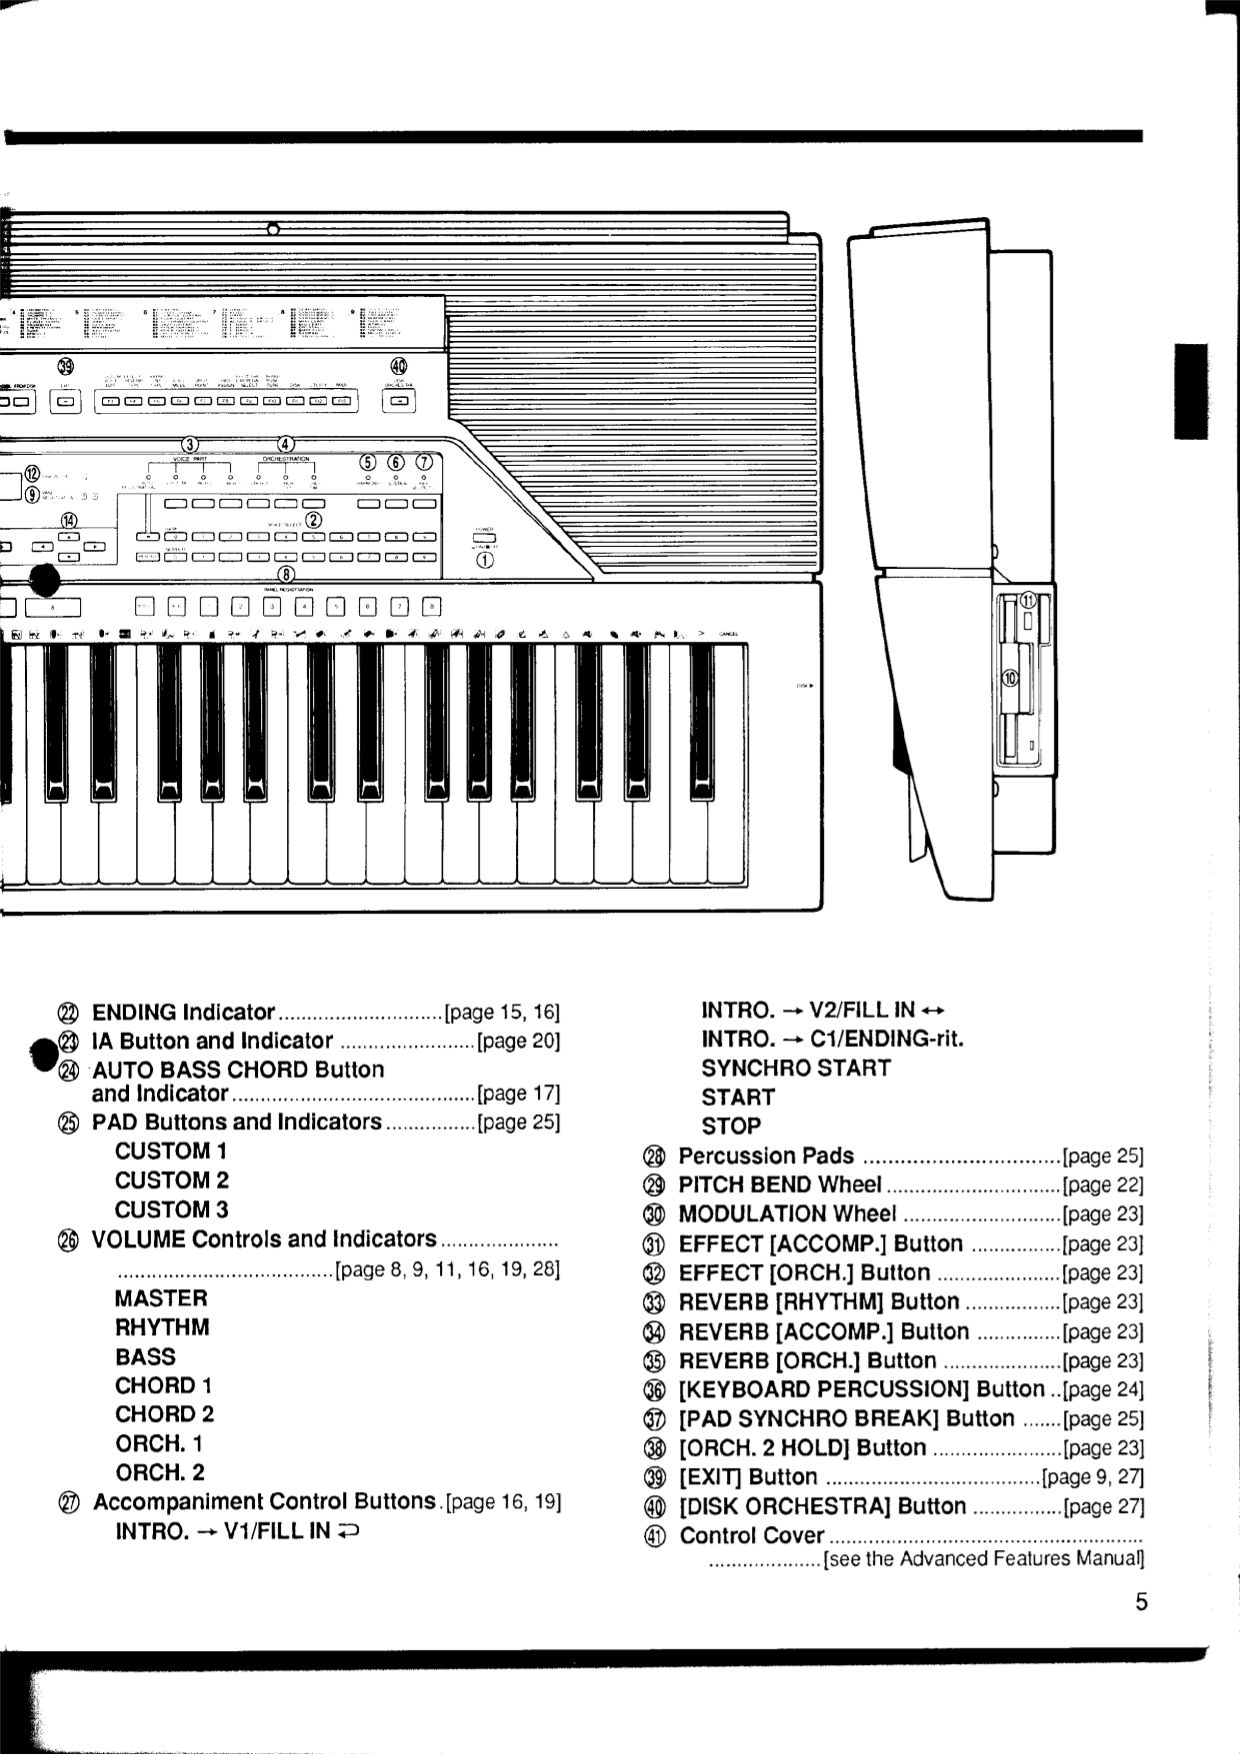 PDF manual for Yamaha Music Keyboard PSR-6700